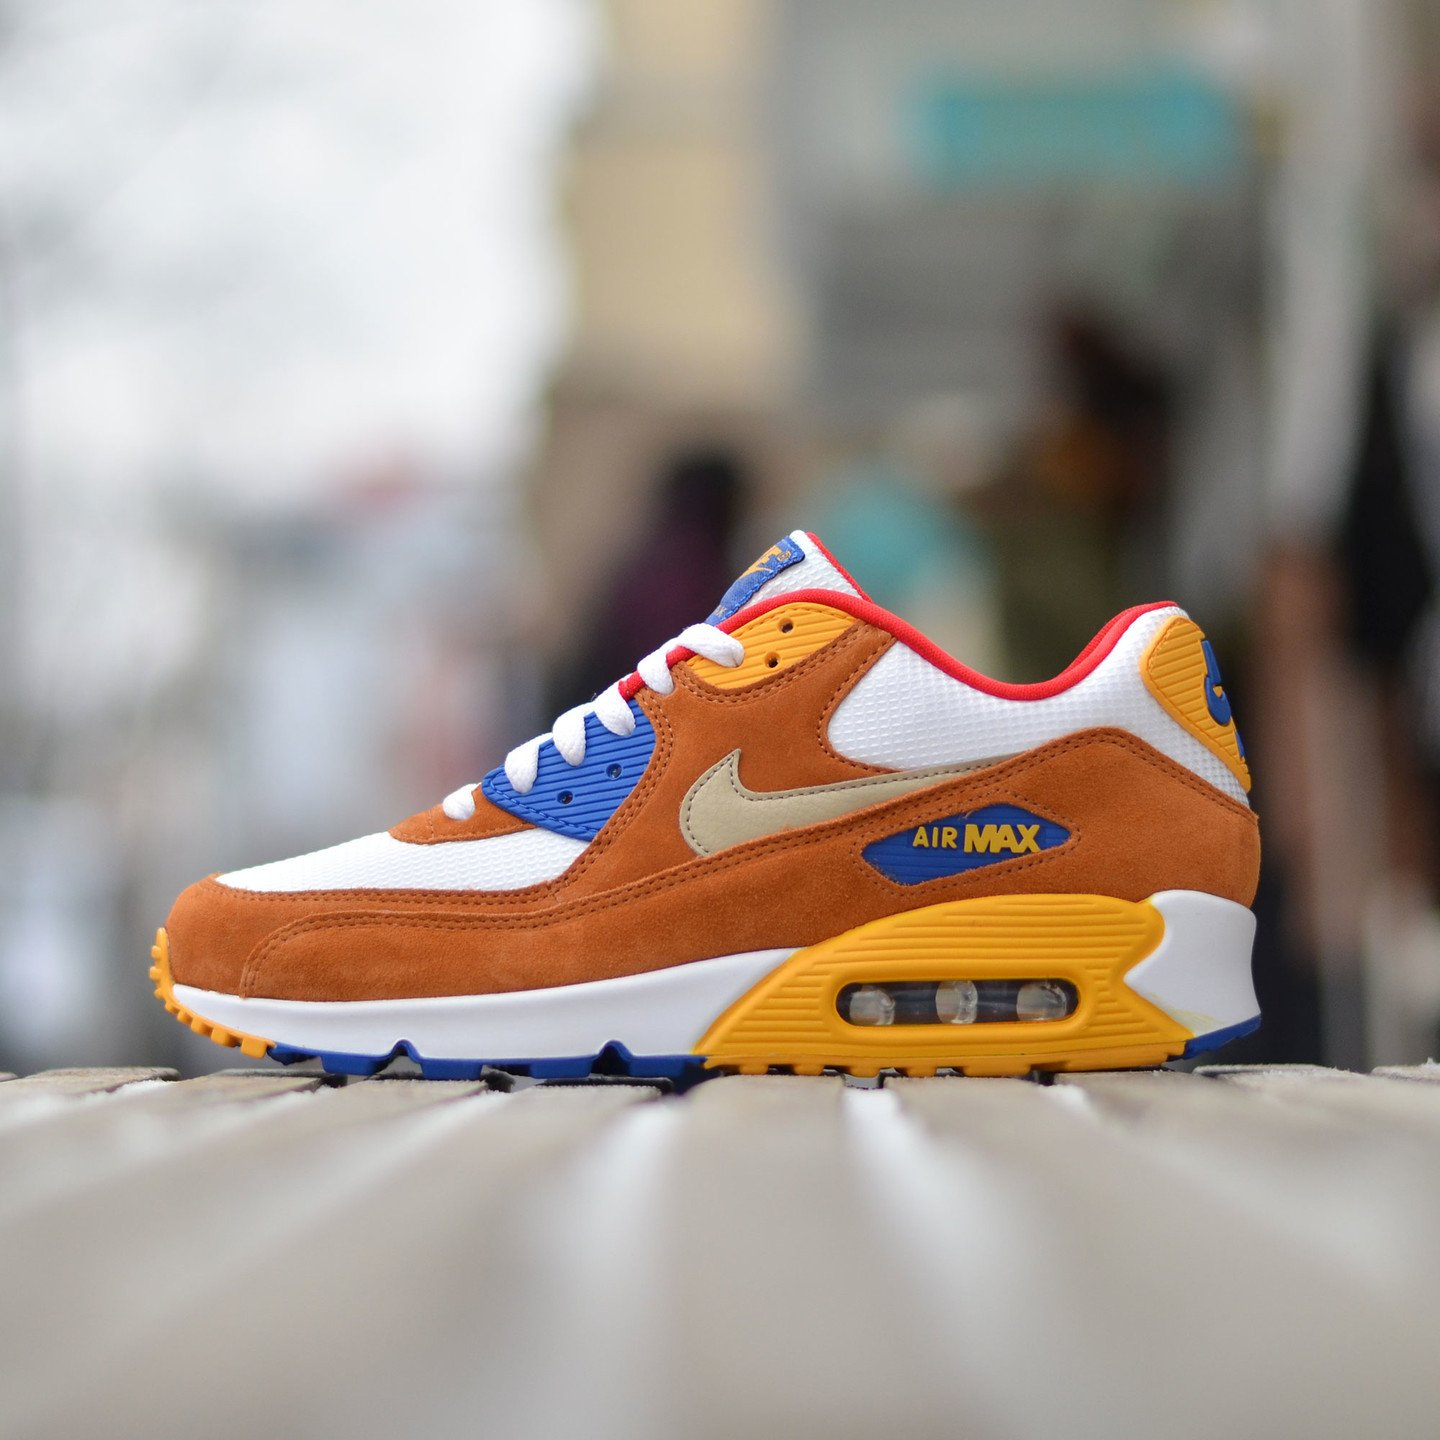 Nike Air Max 90 Premium White / Brown / Yellow / Gold 700155-107-42